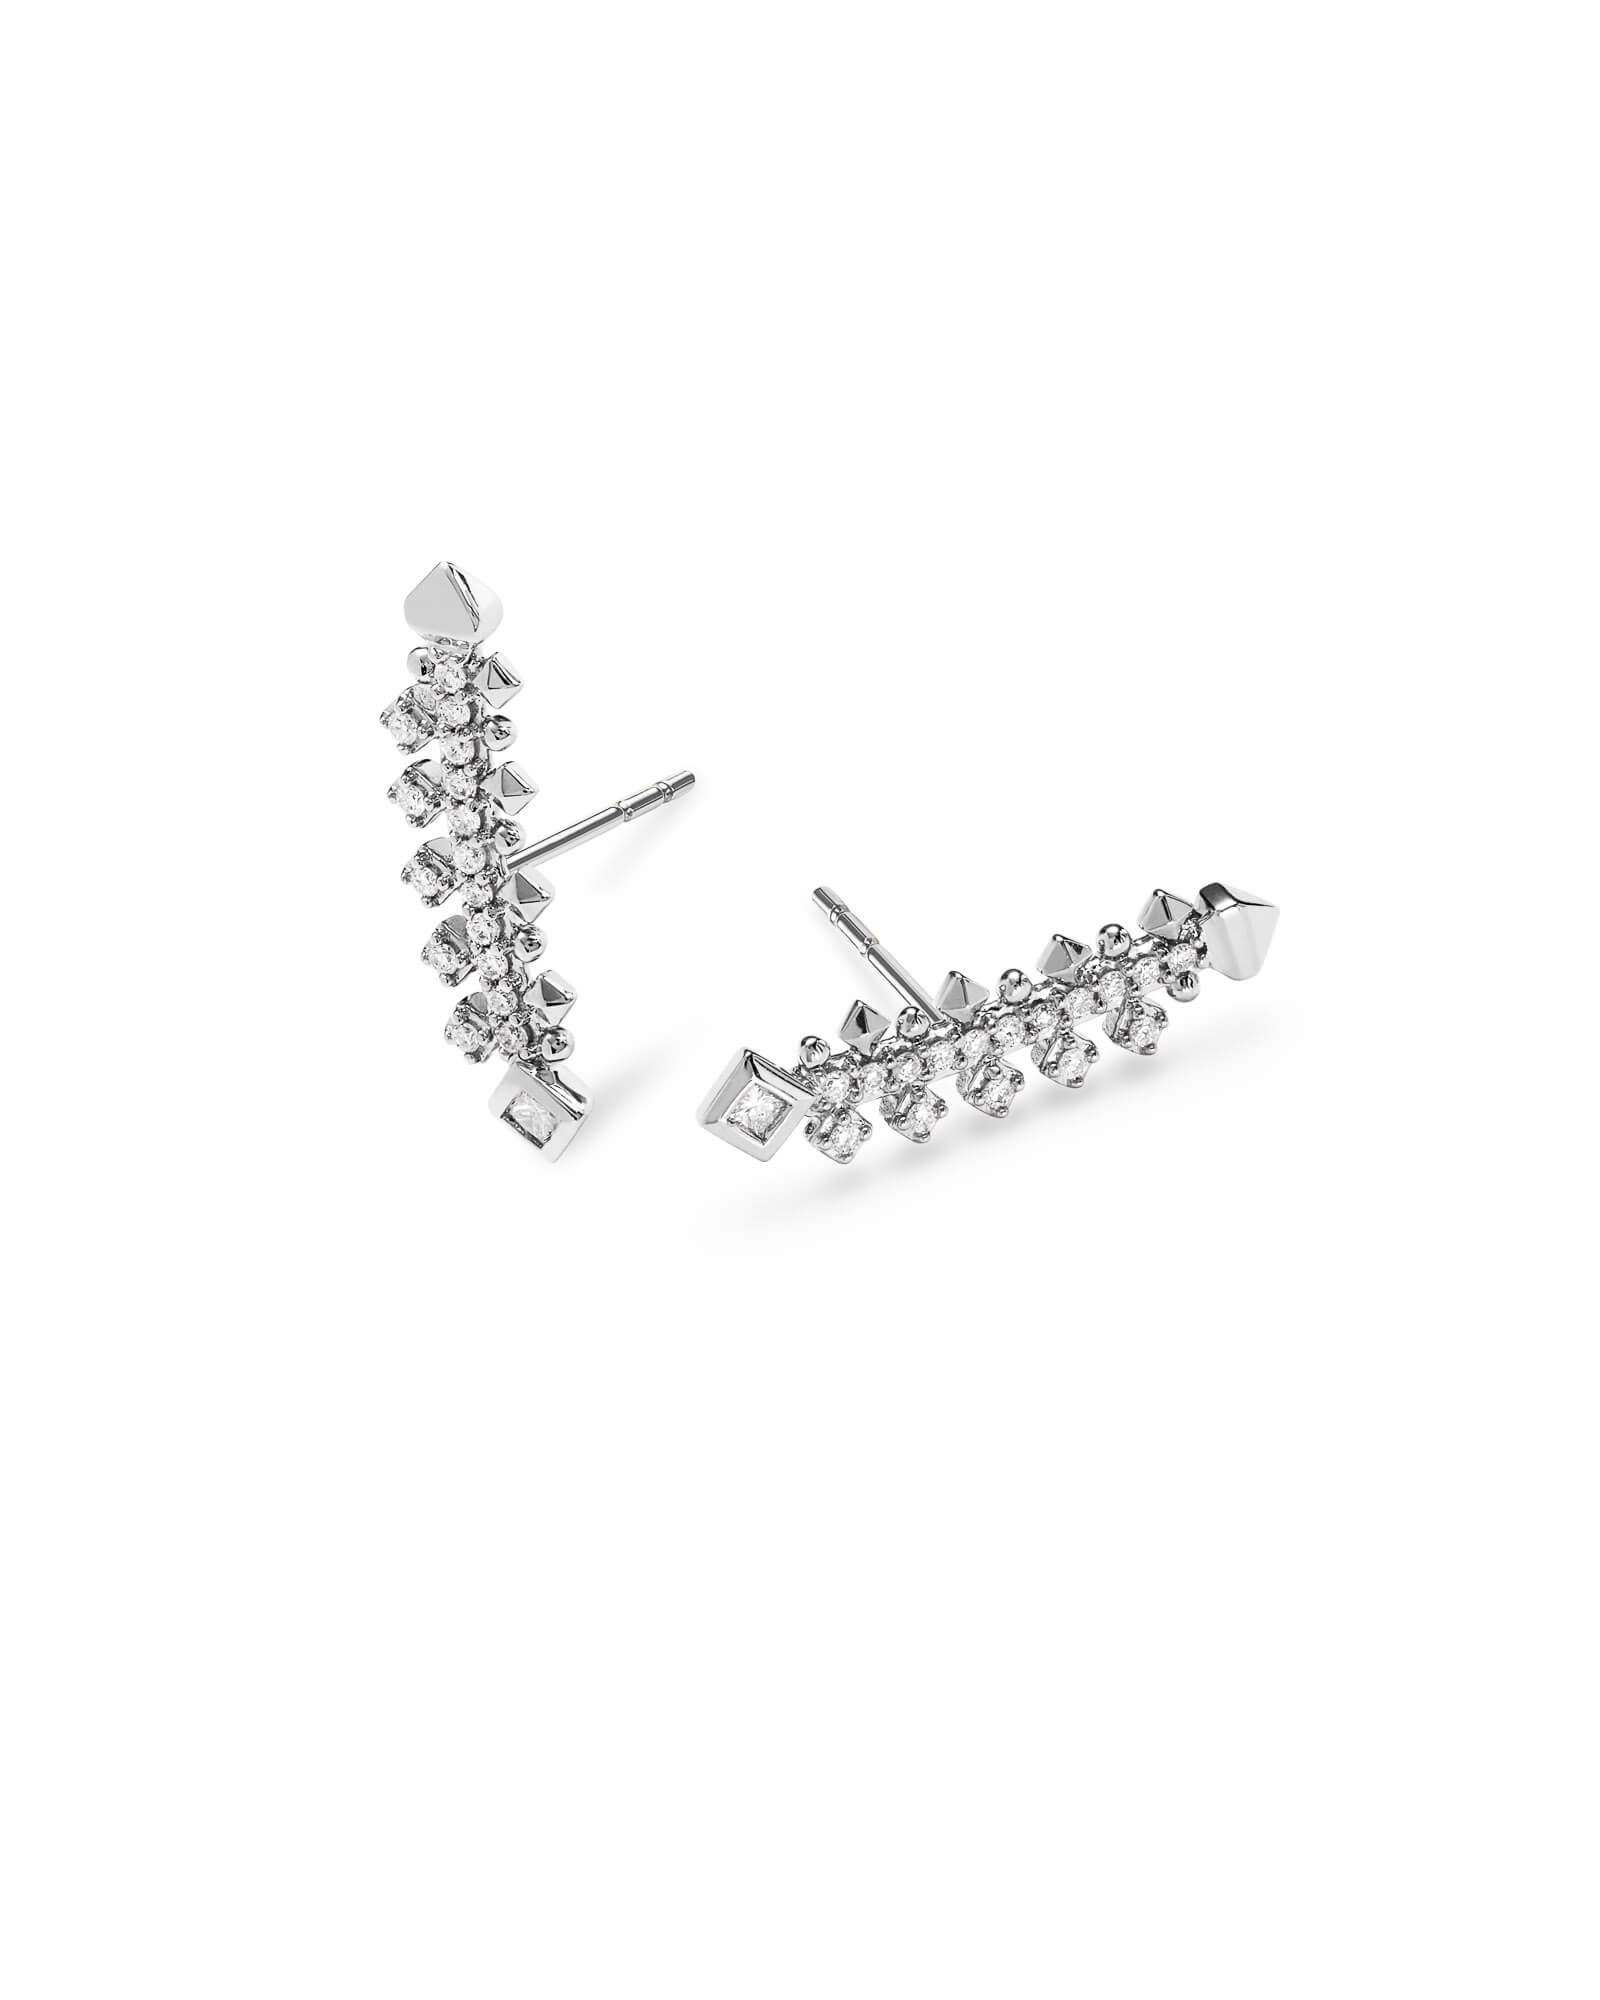 Indie 14k White Gold Earrings in White Diamond